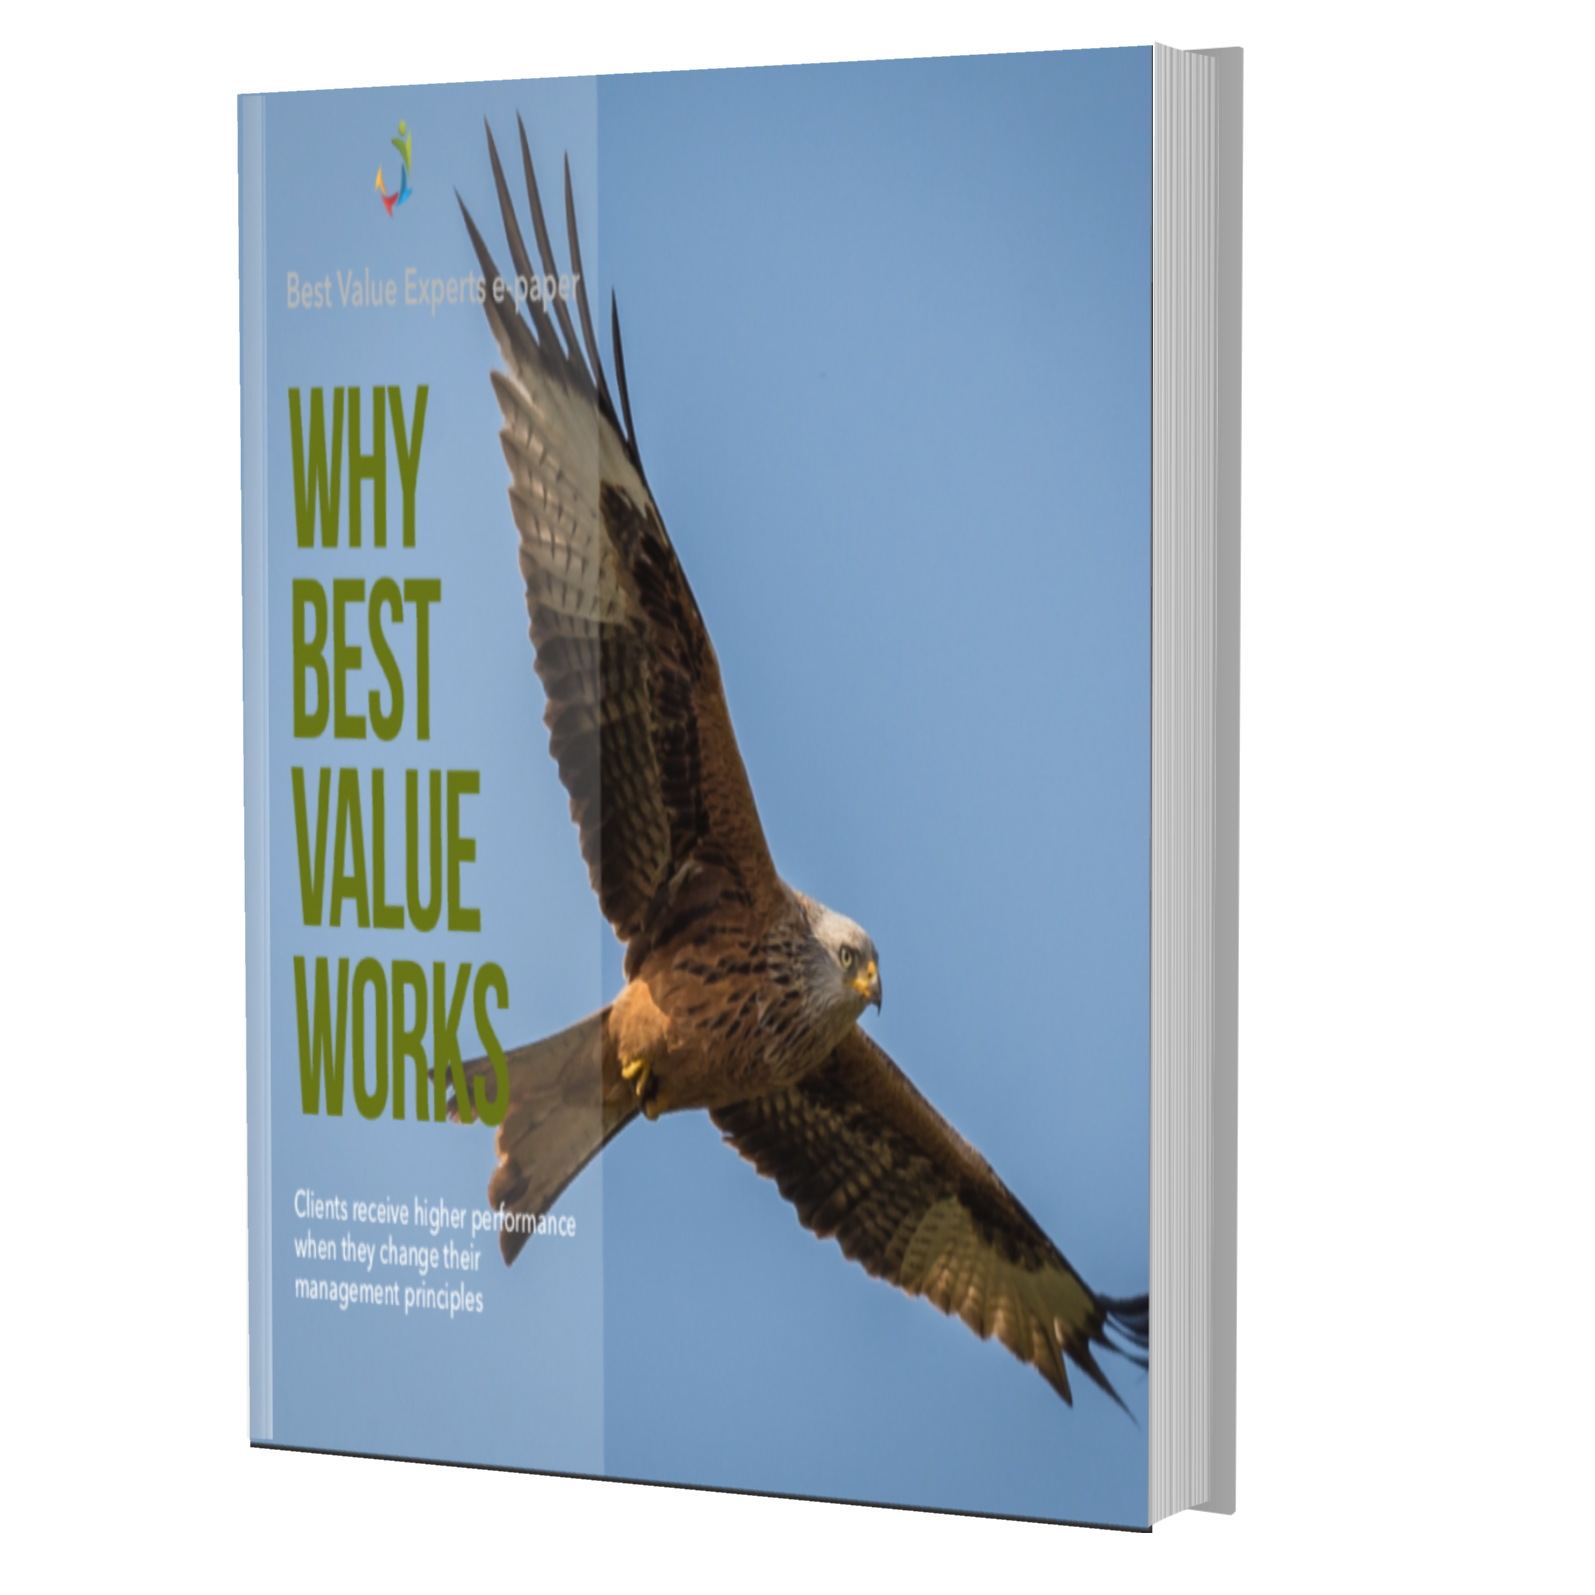 free ebook Why Best Value works Best Value Experts Academy